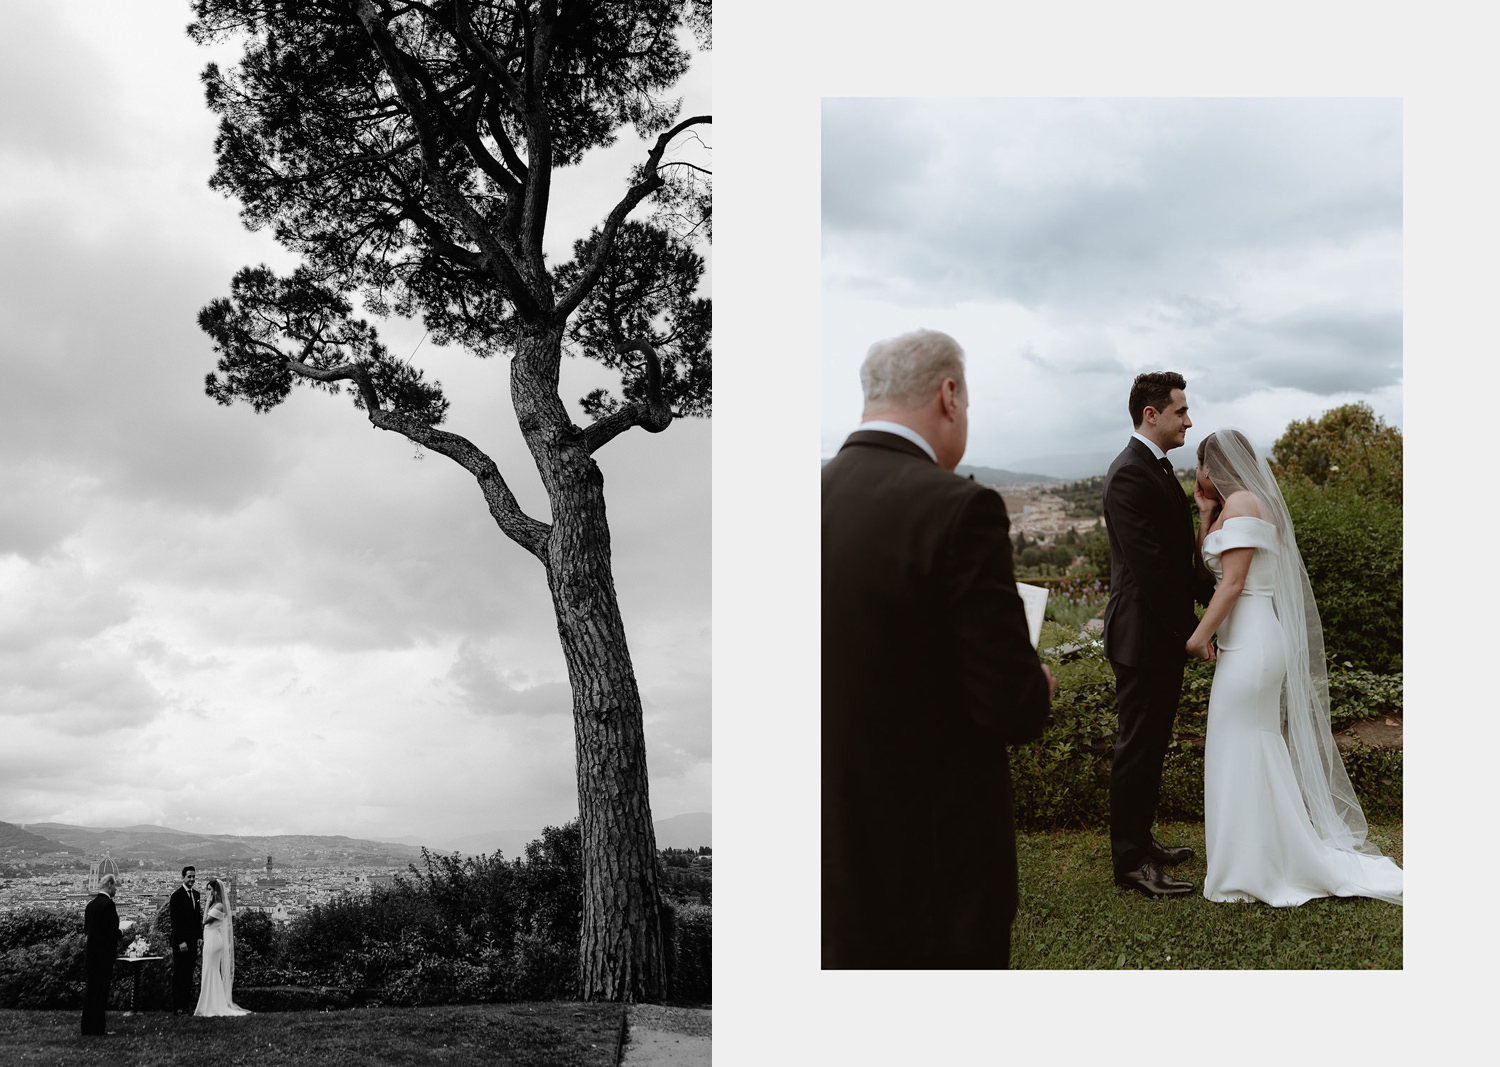 elopement photographer florence torre bellosguardo outdoor rainy ceremony